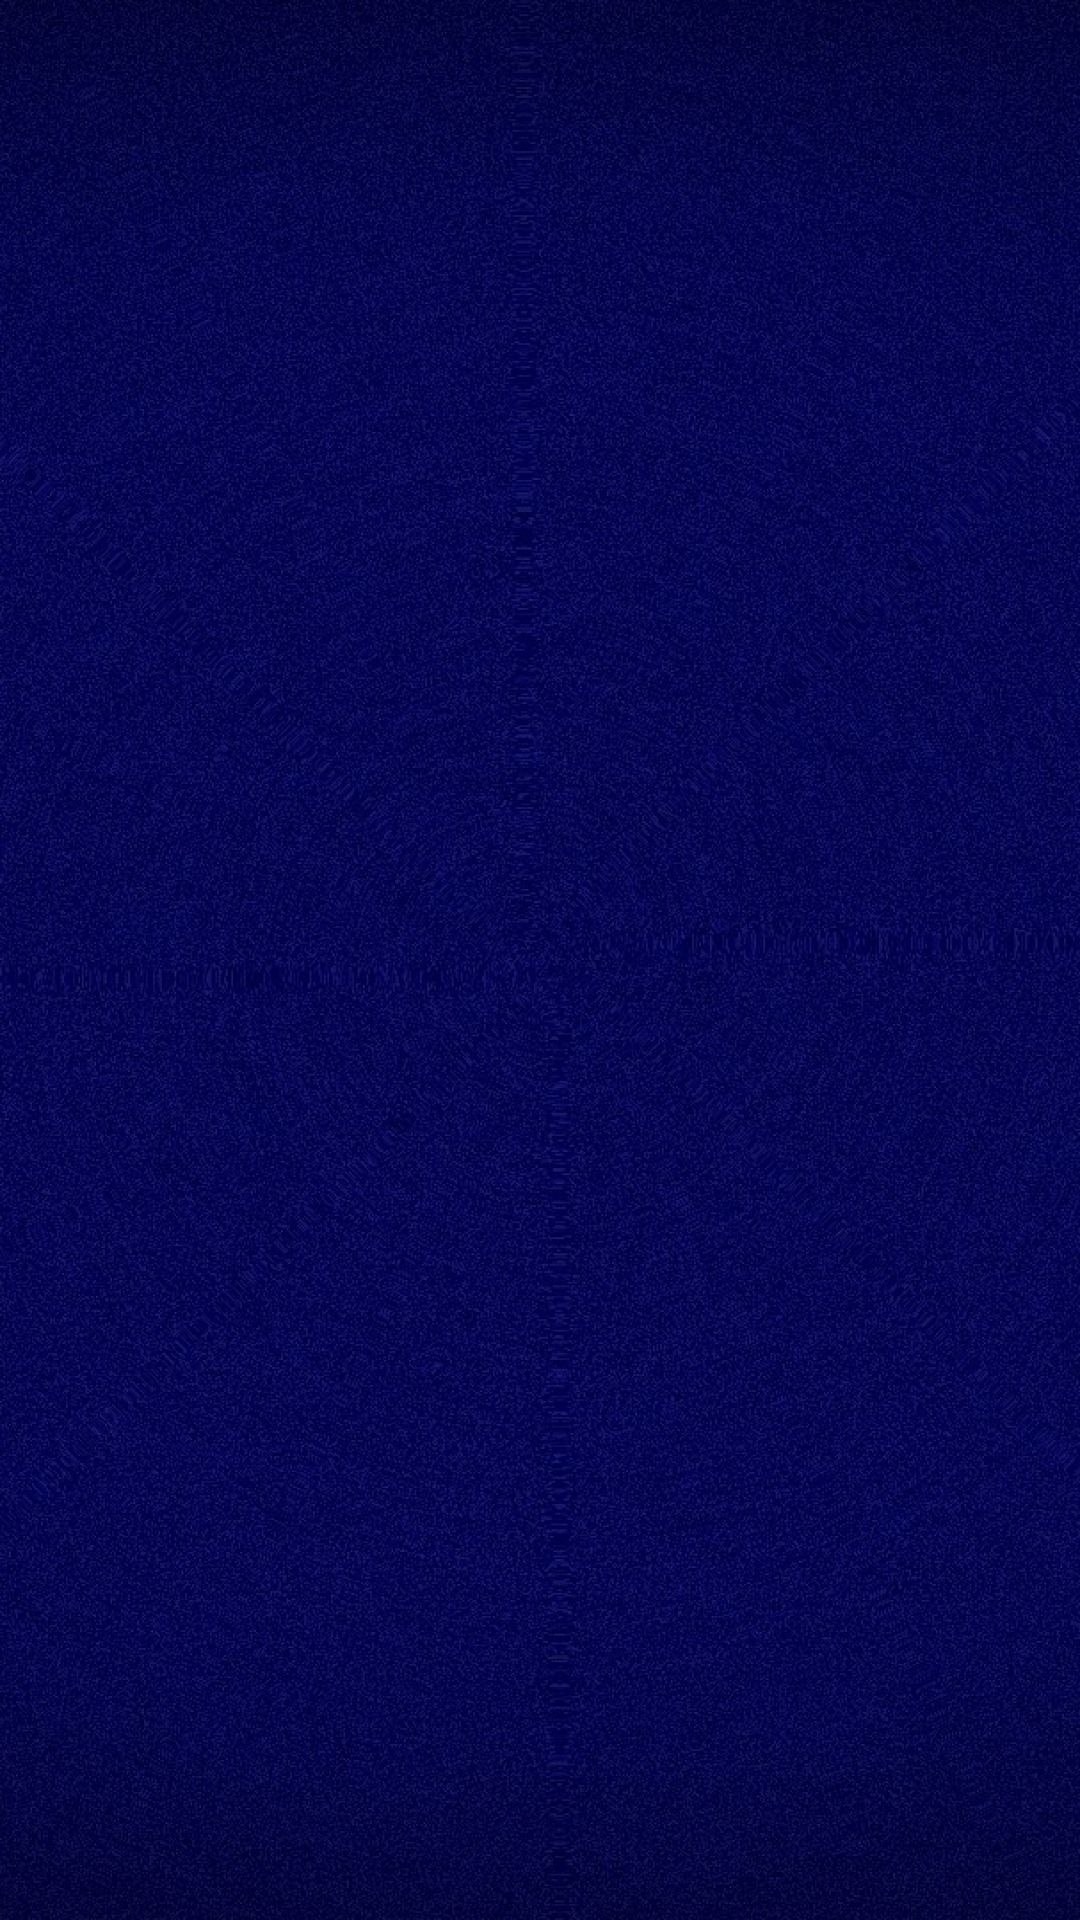 Blue Solid Hd Android Wallpapers Wallpaper Cave